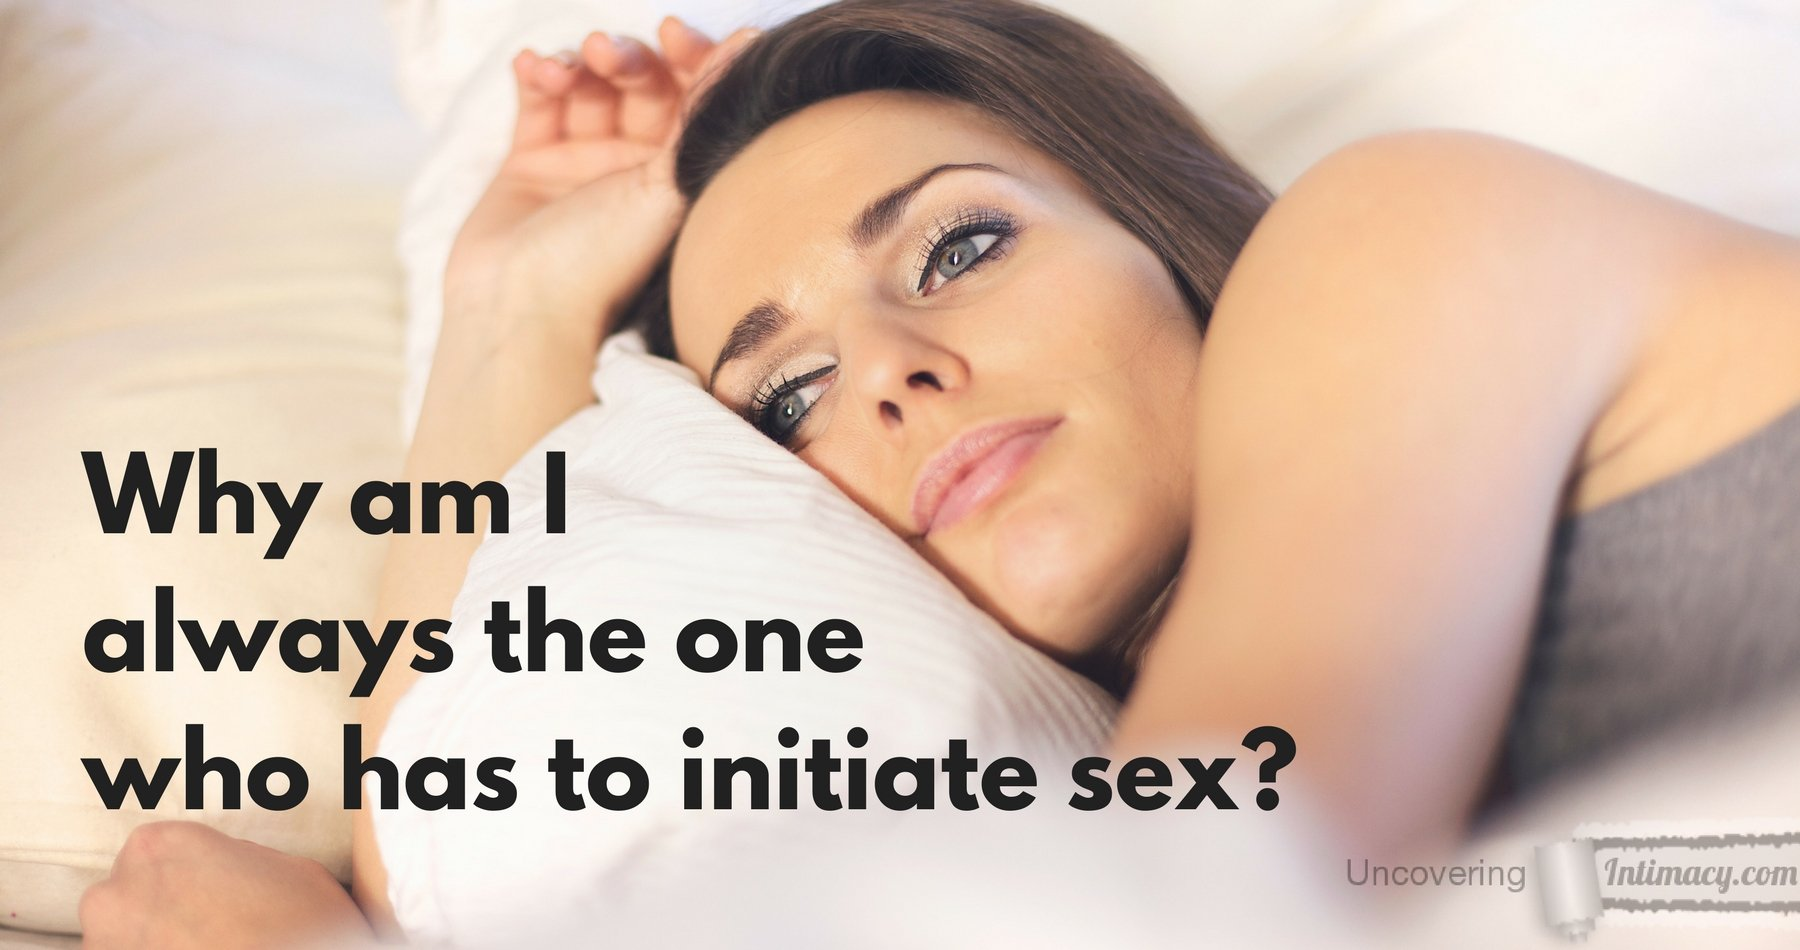 Wife iniates sex by a bj